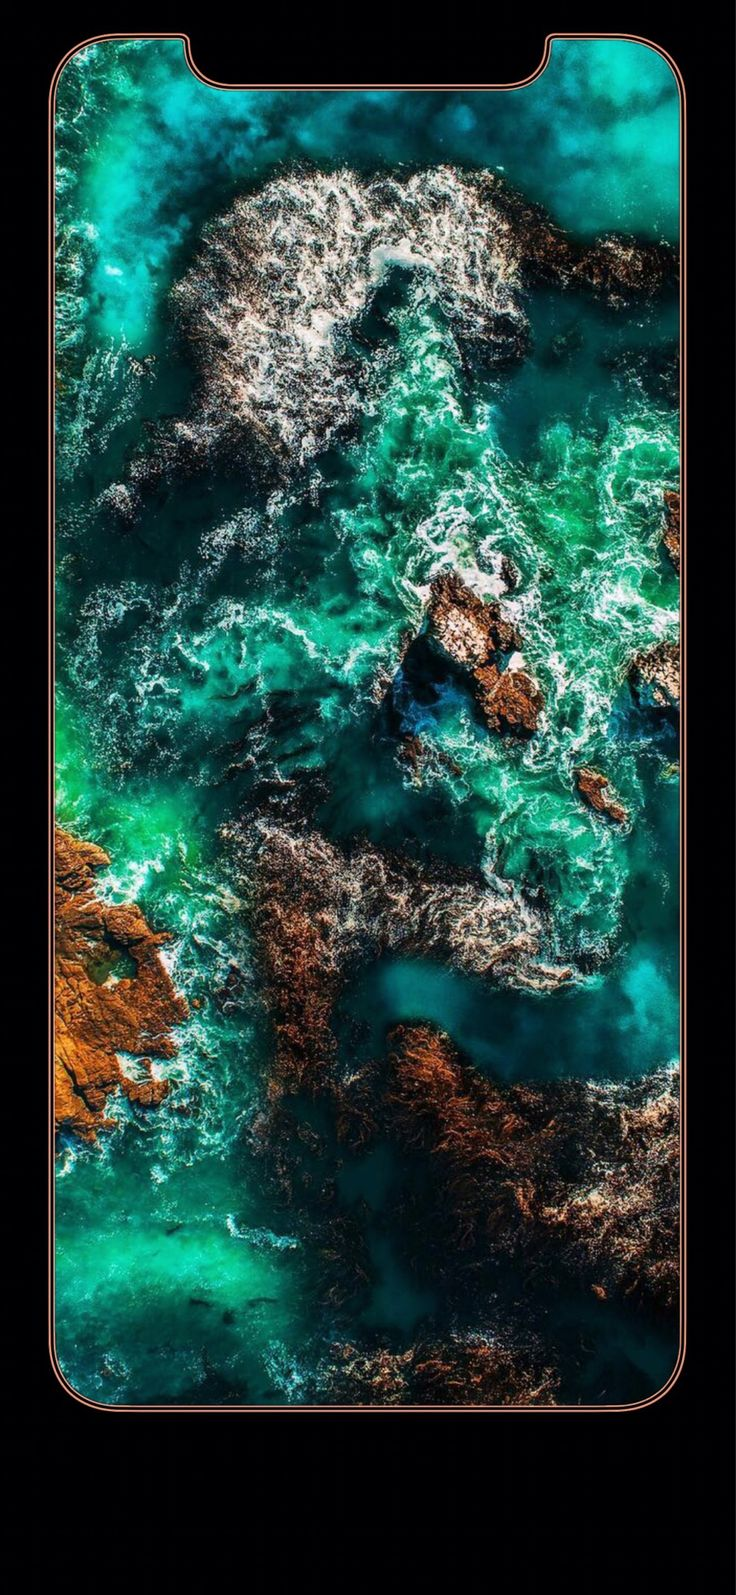 The iPhone X/Xs Wallpaper Thread – Page 43 – iPhone, iPad, iPod Forums at iMore…. – Daniel